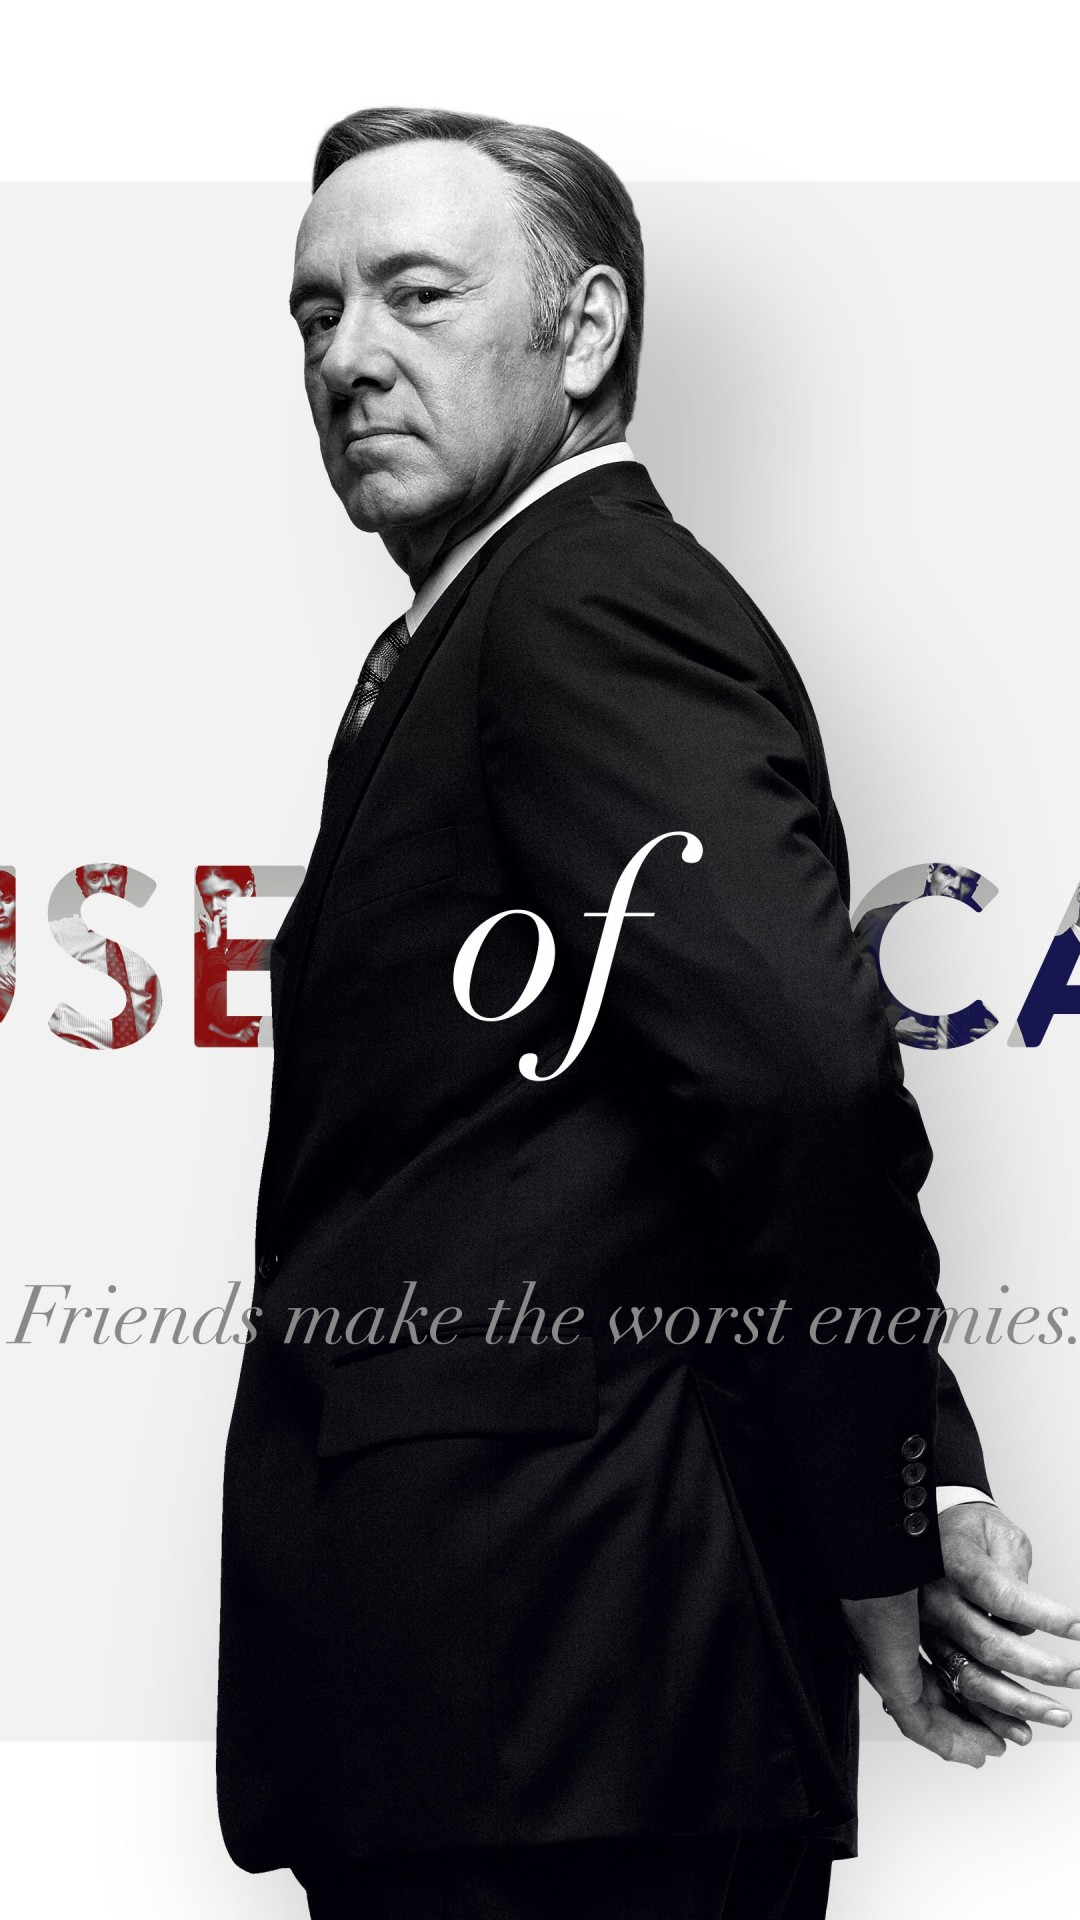 Frank Underwood - House of Cards Wallpaper for Google Nexus 5